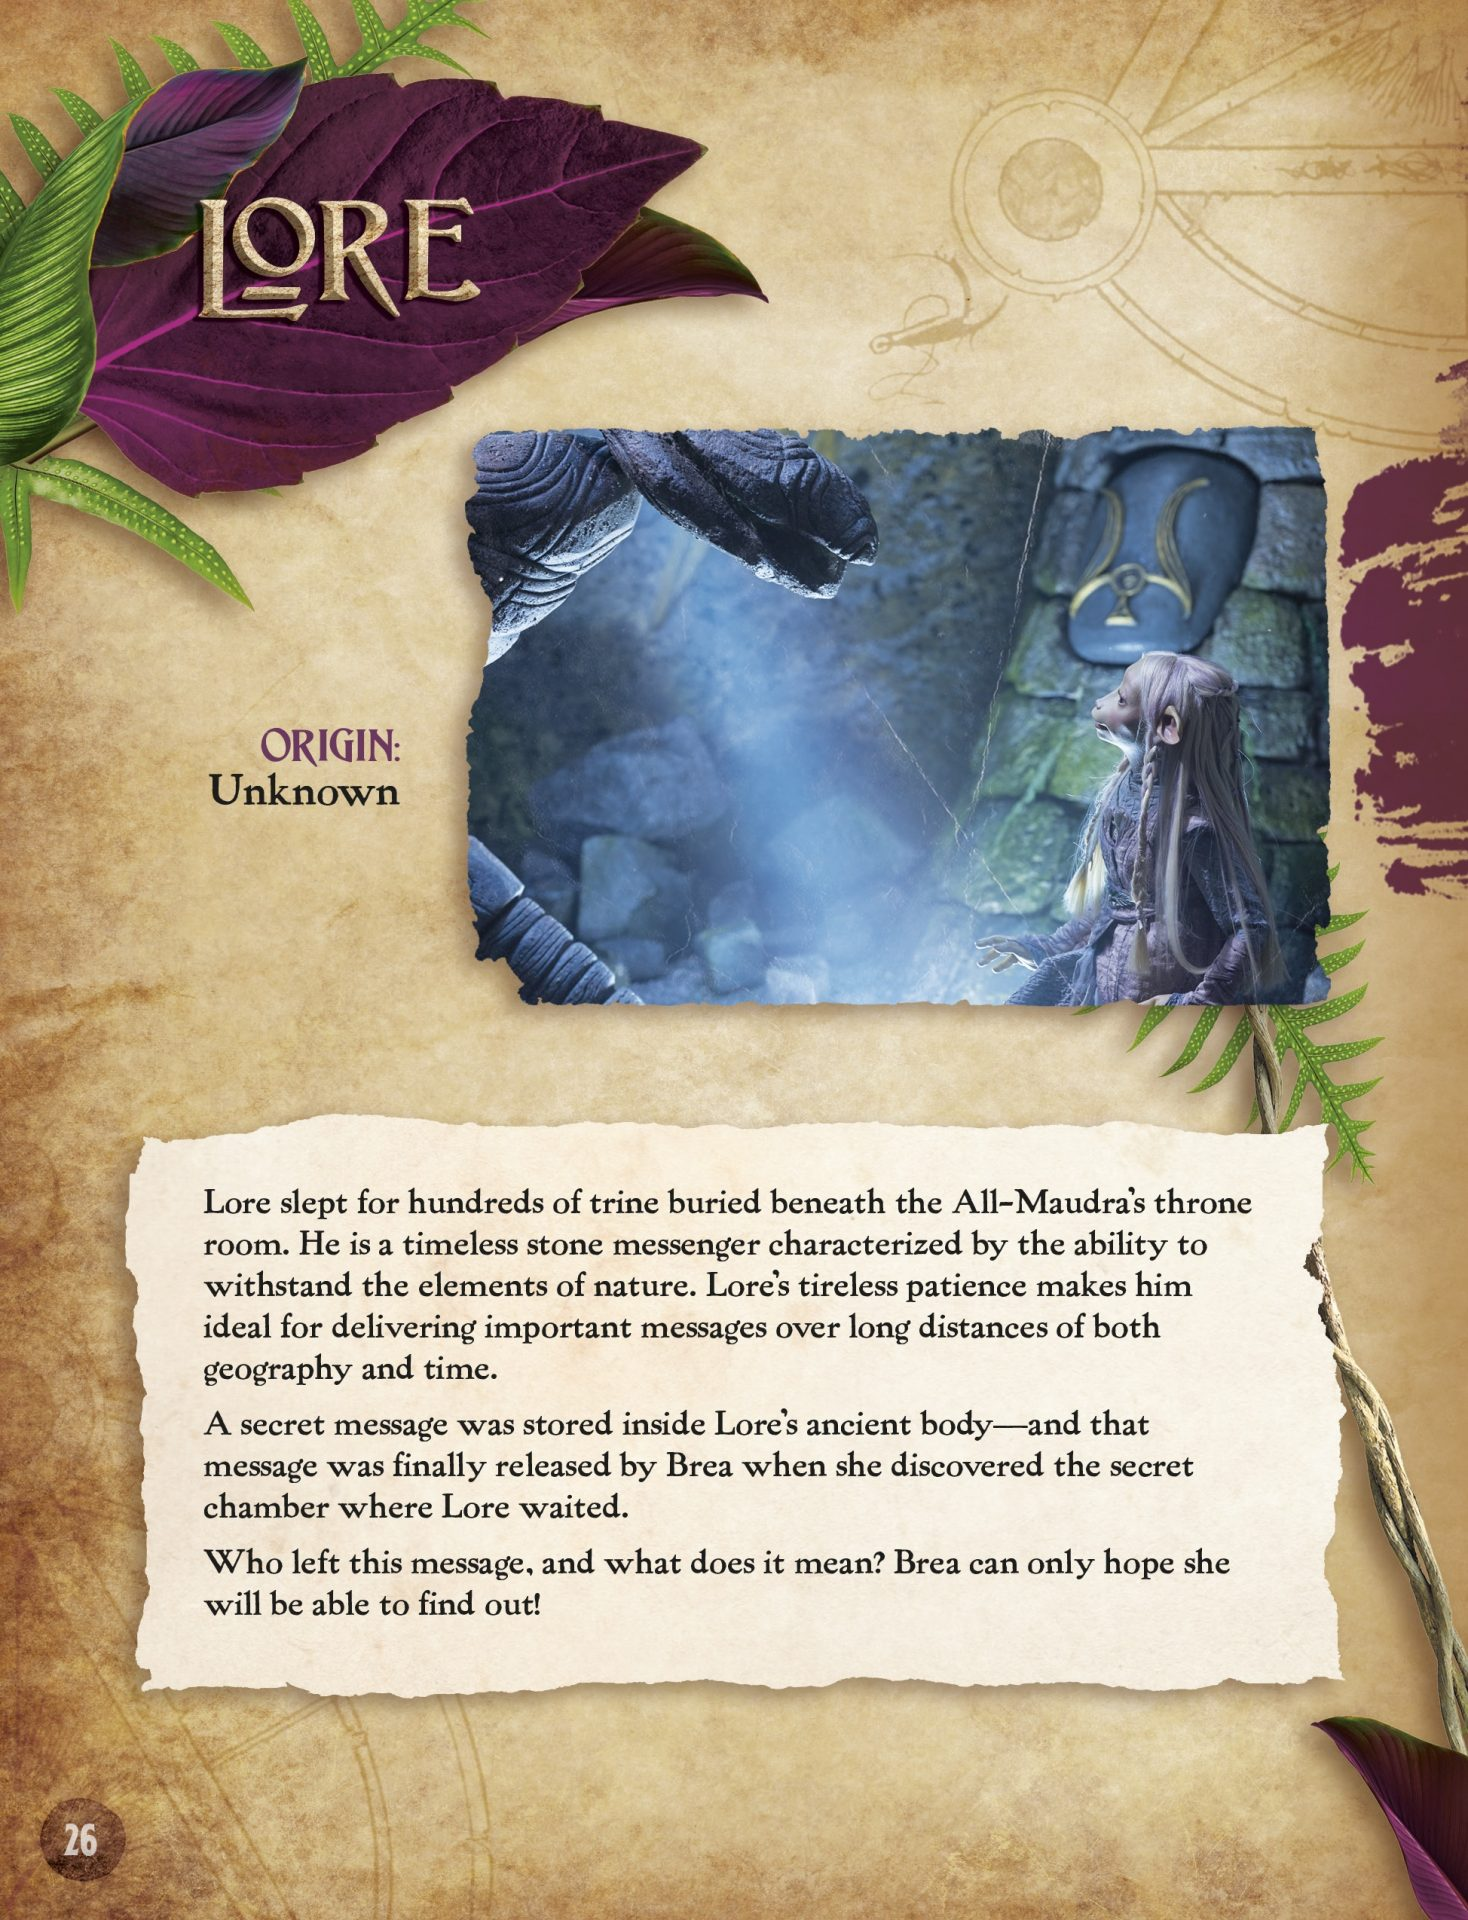 Heroes of the Resistance: A Guide to the Characters of The Dark Crystal: Age of Resistance that explores the backstory of the character Lore